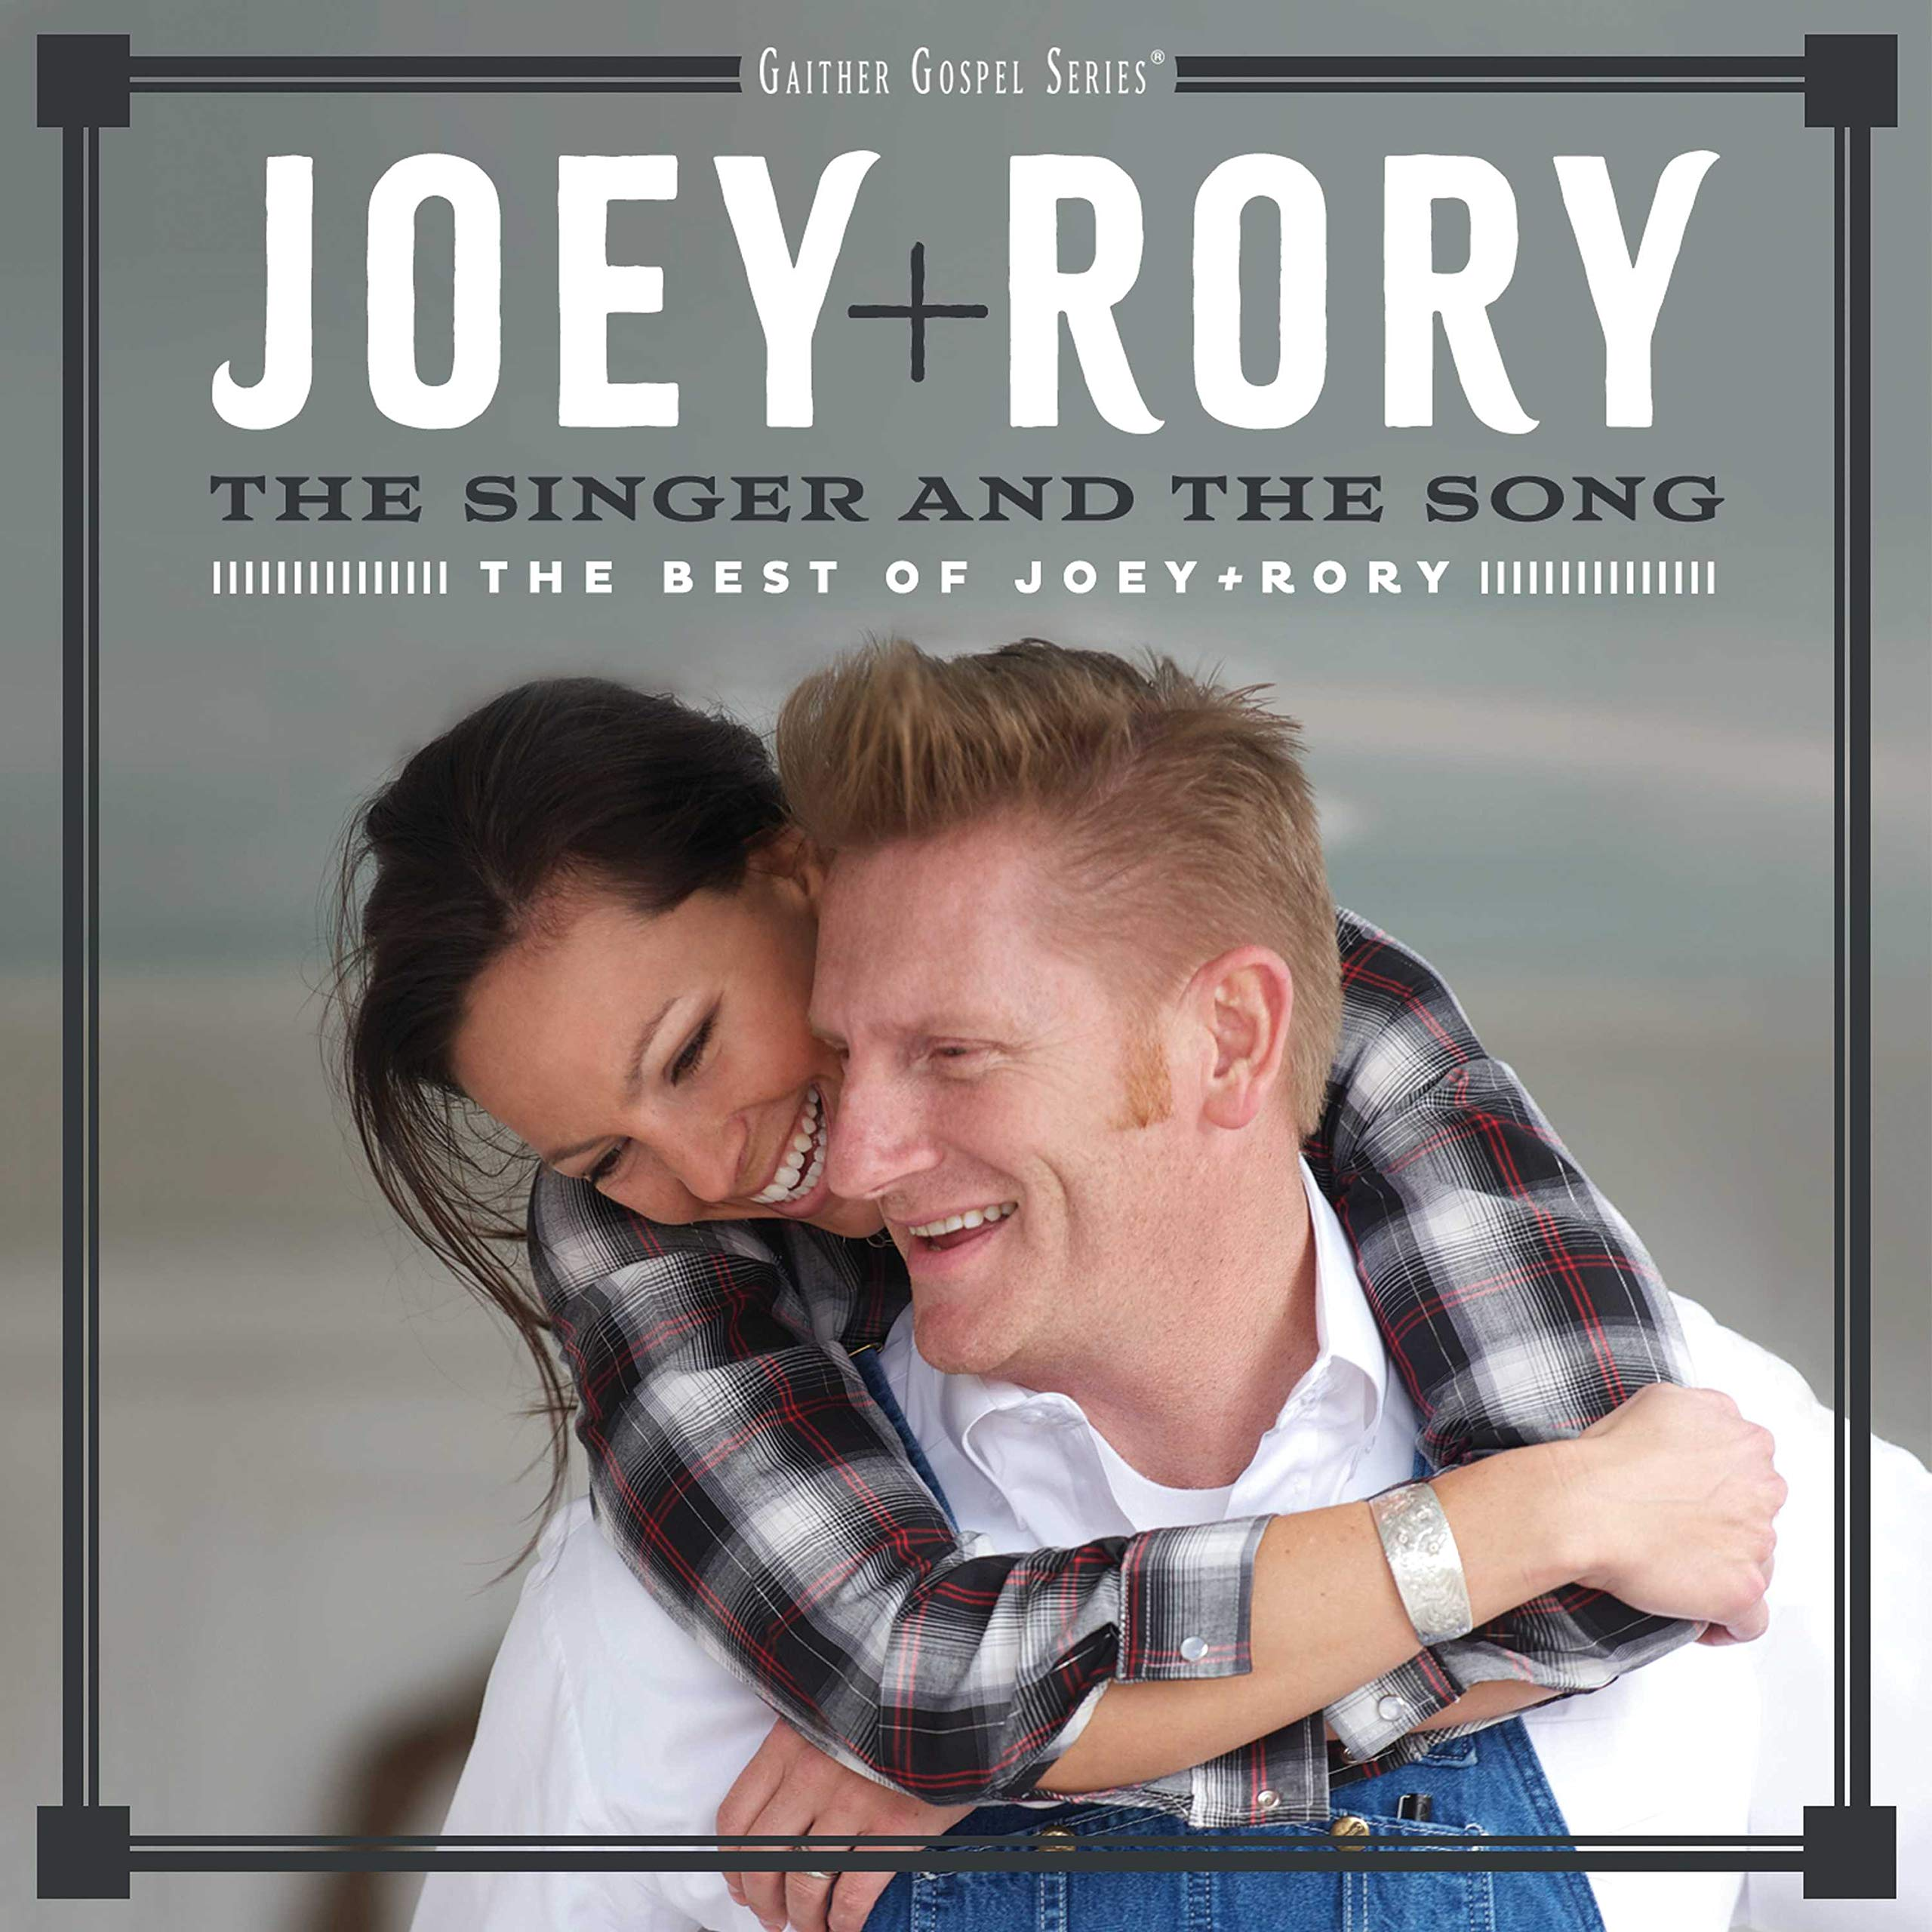 Book Cover: The Singer and the Song: The Best of Joey Rory